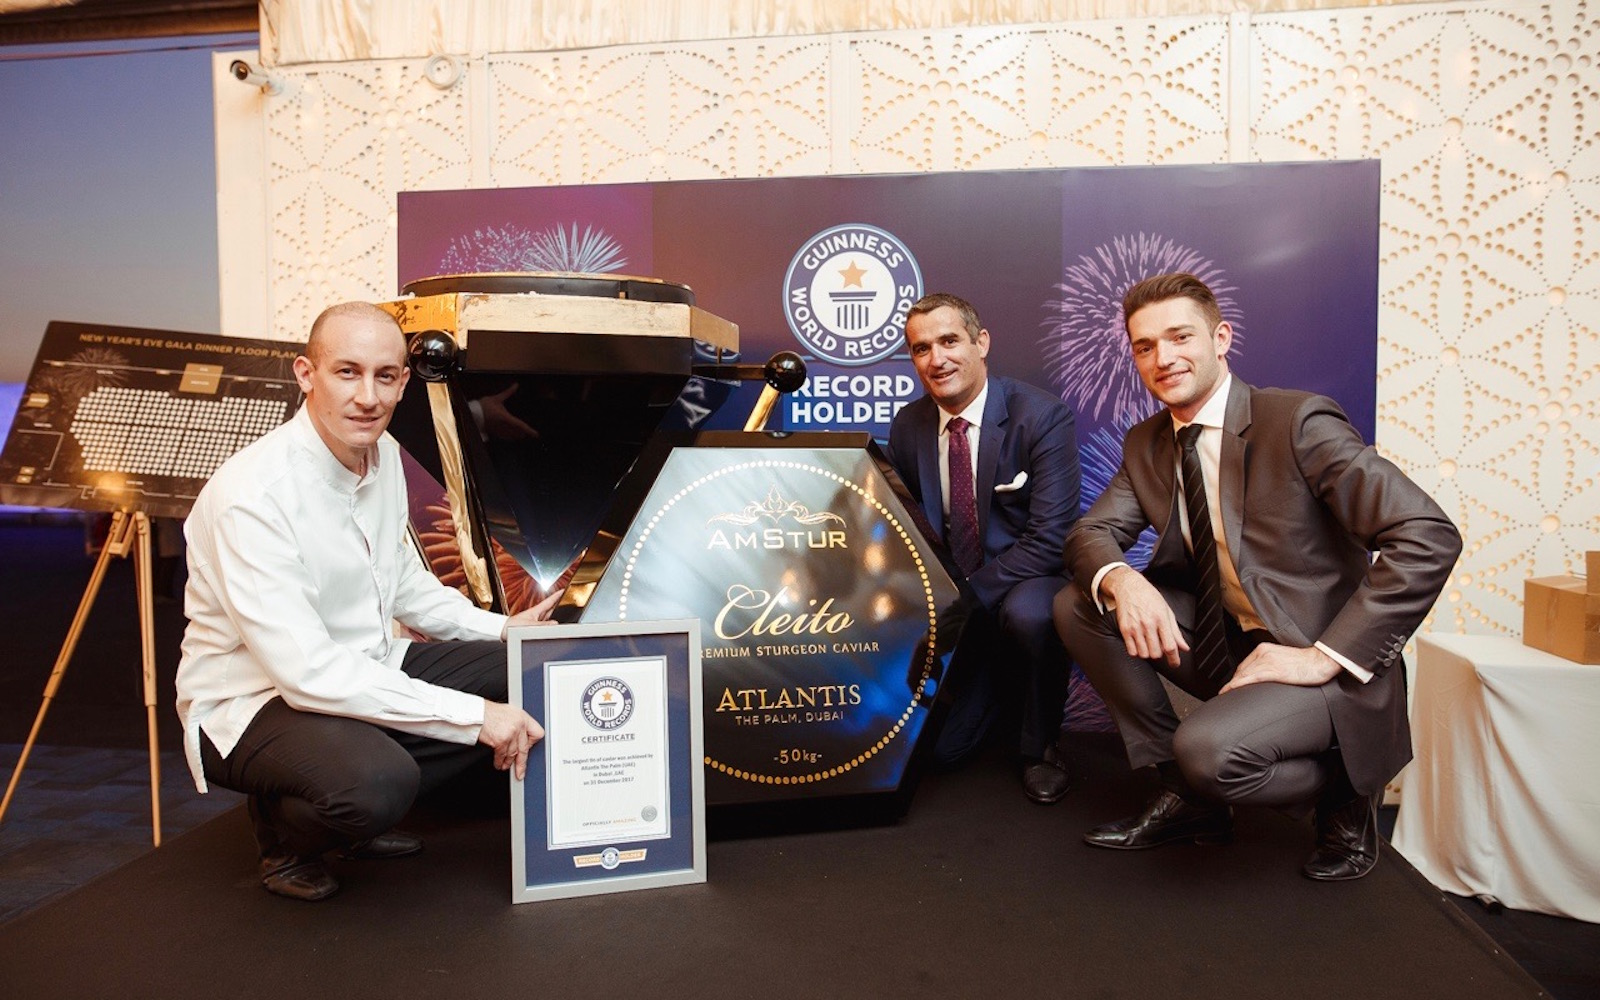 World's largest caviar tin Atlantis The Palm Dubai